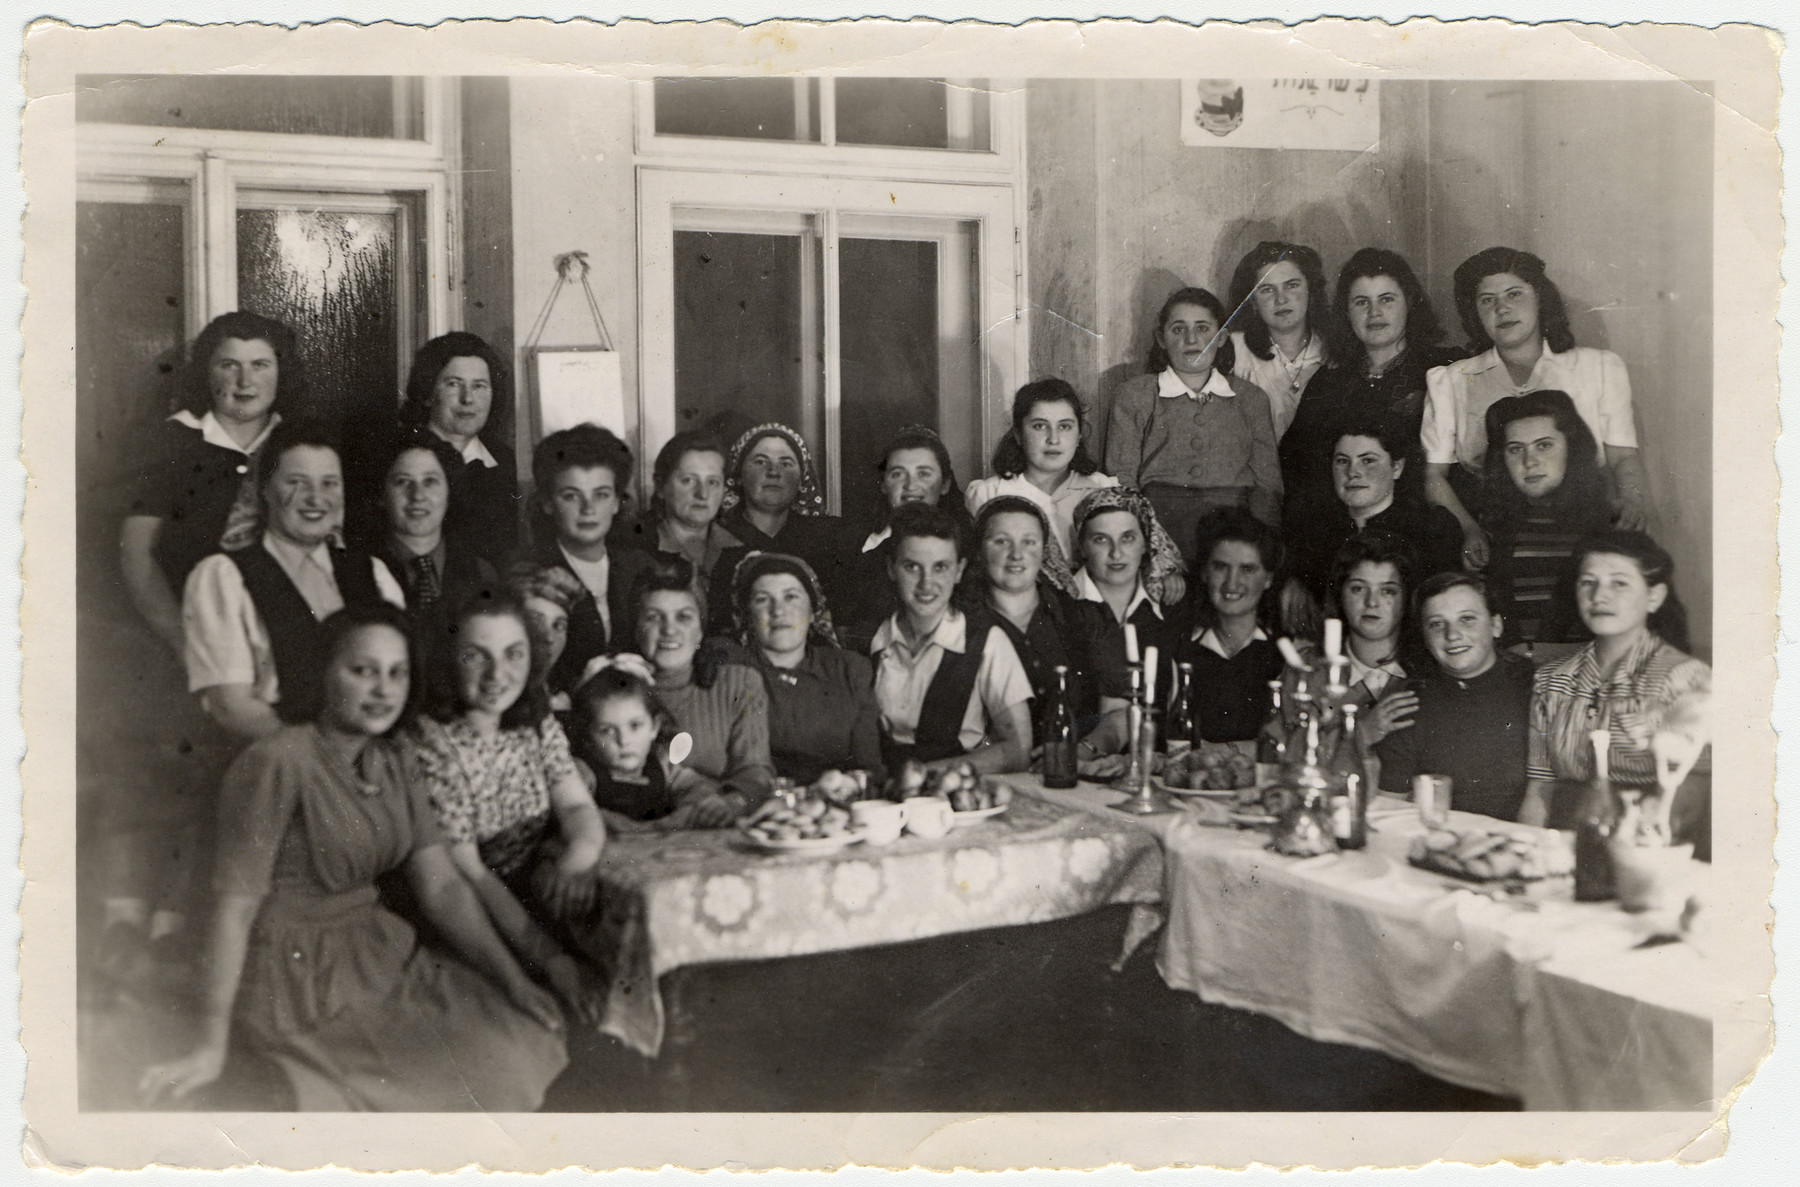 Religious Jewish women gather around a table for a celebration in the Bad Gastein displaced persons' camp.  Among those pictured are Esther and Itka Ass (seated left).